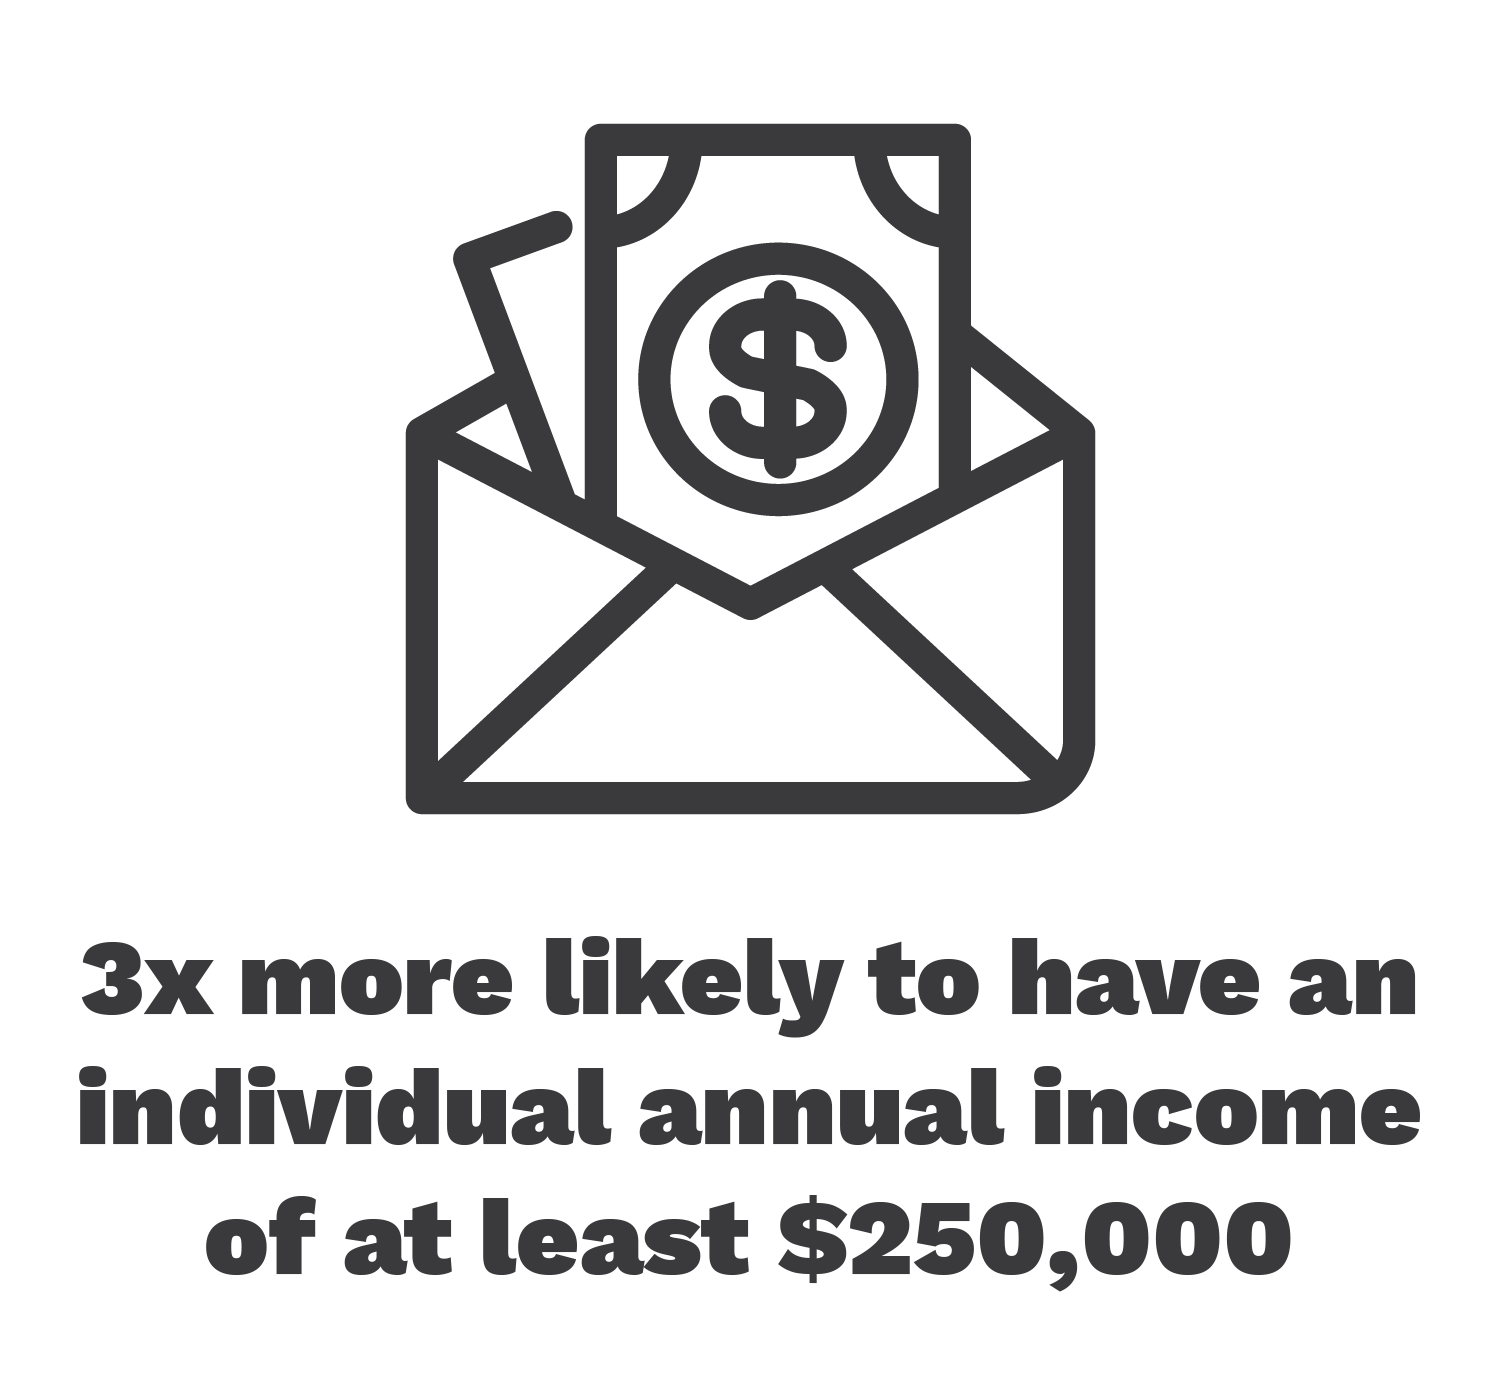 3x more likely to have an individual annual income of at least $250,000